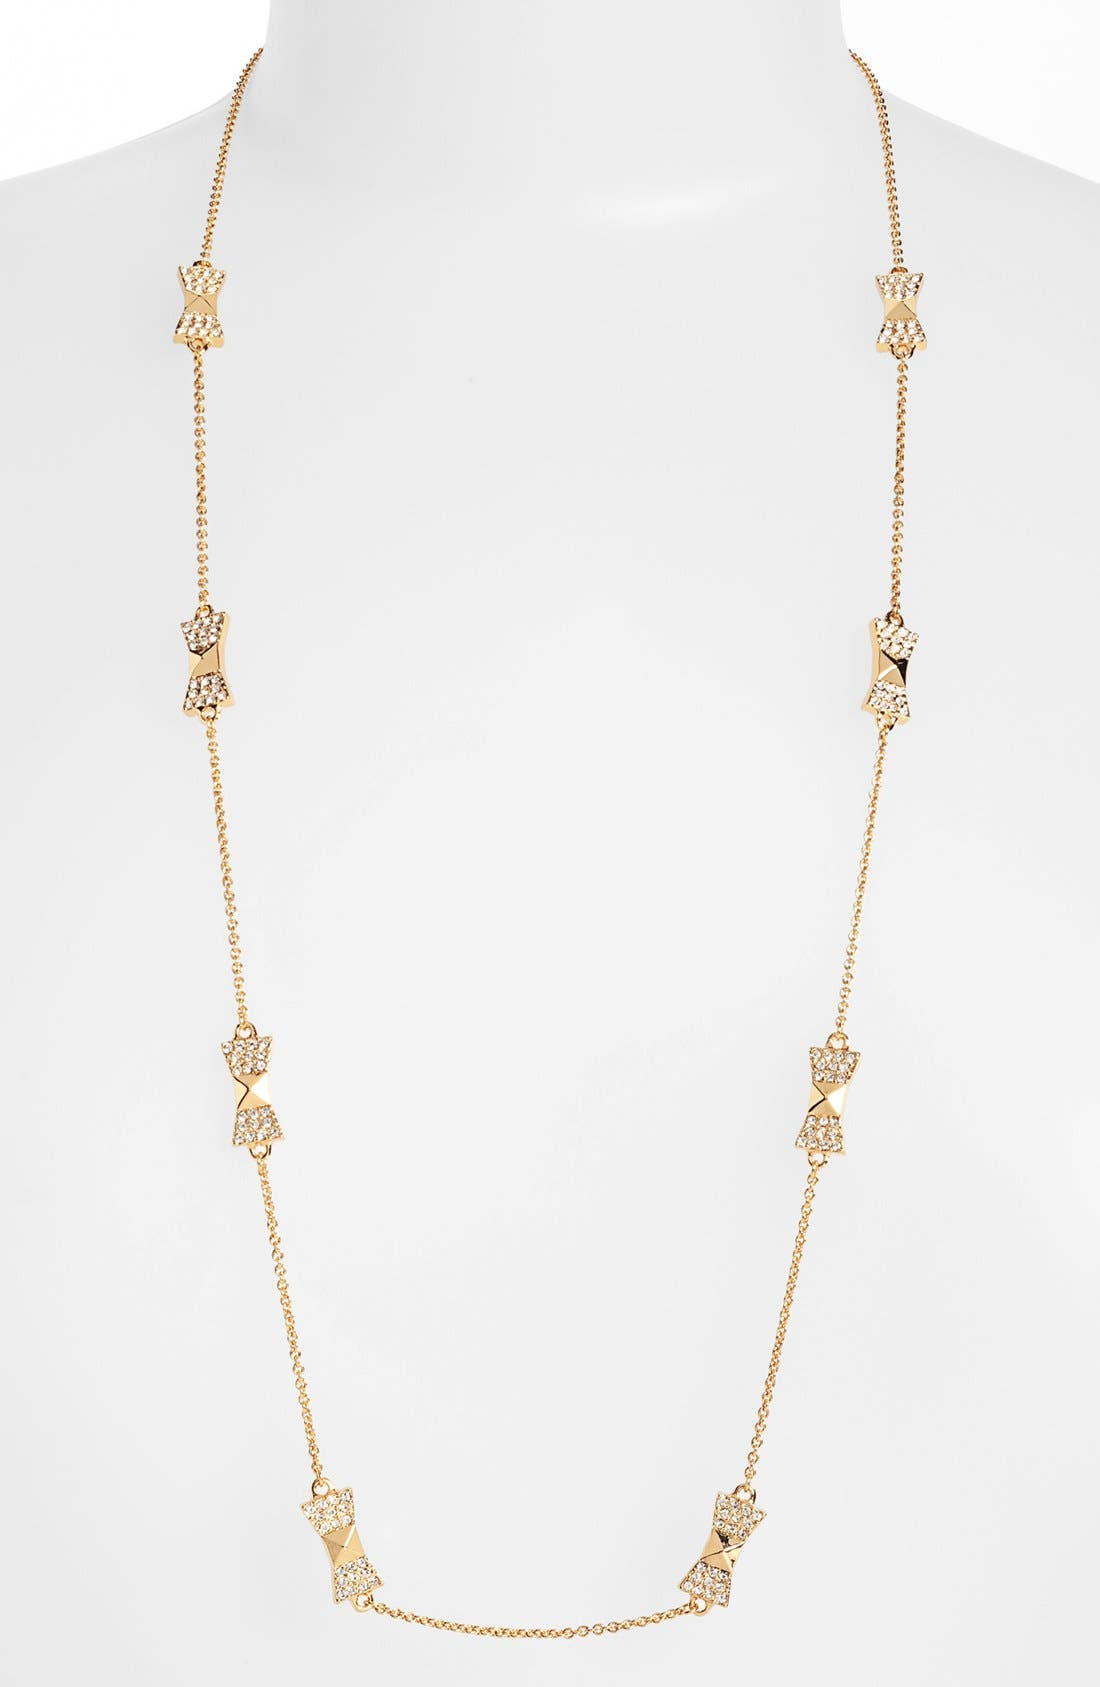 Main Image - kate spade new york 'locked in' long bow necklace